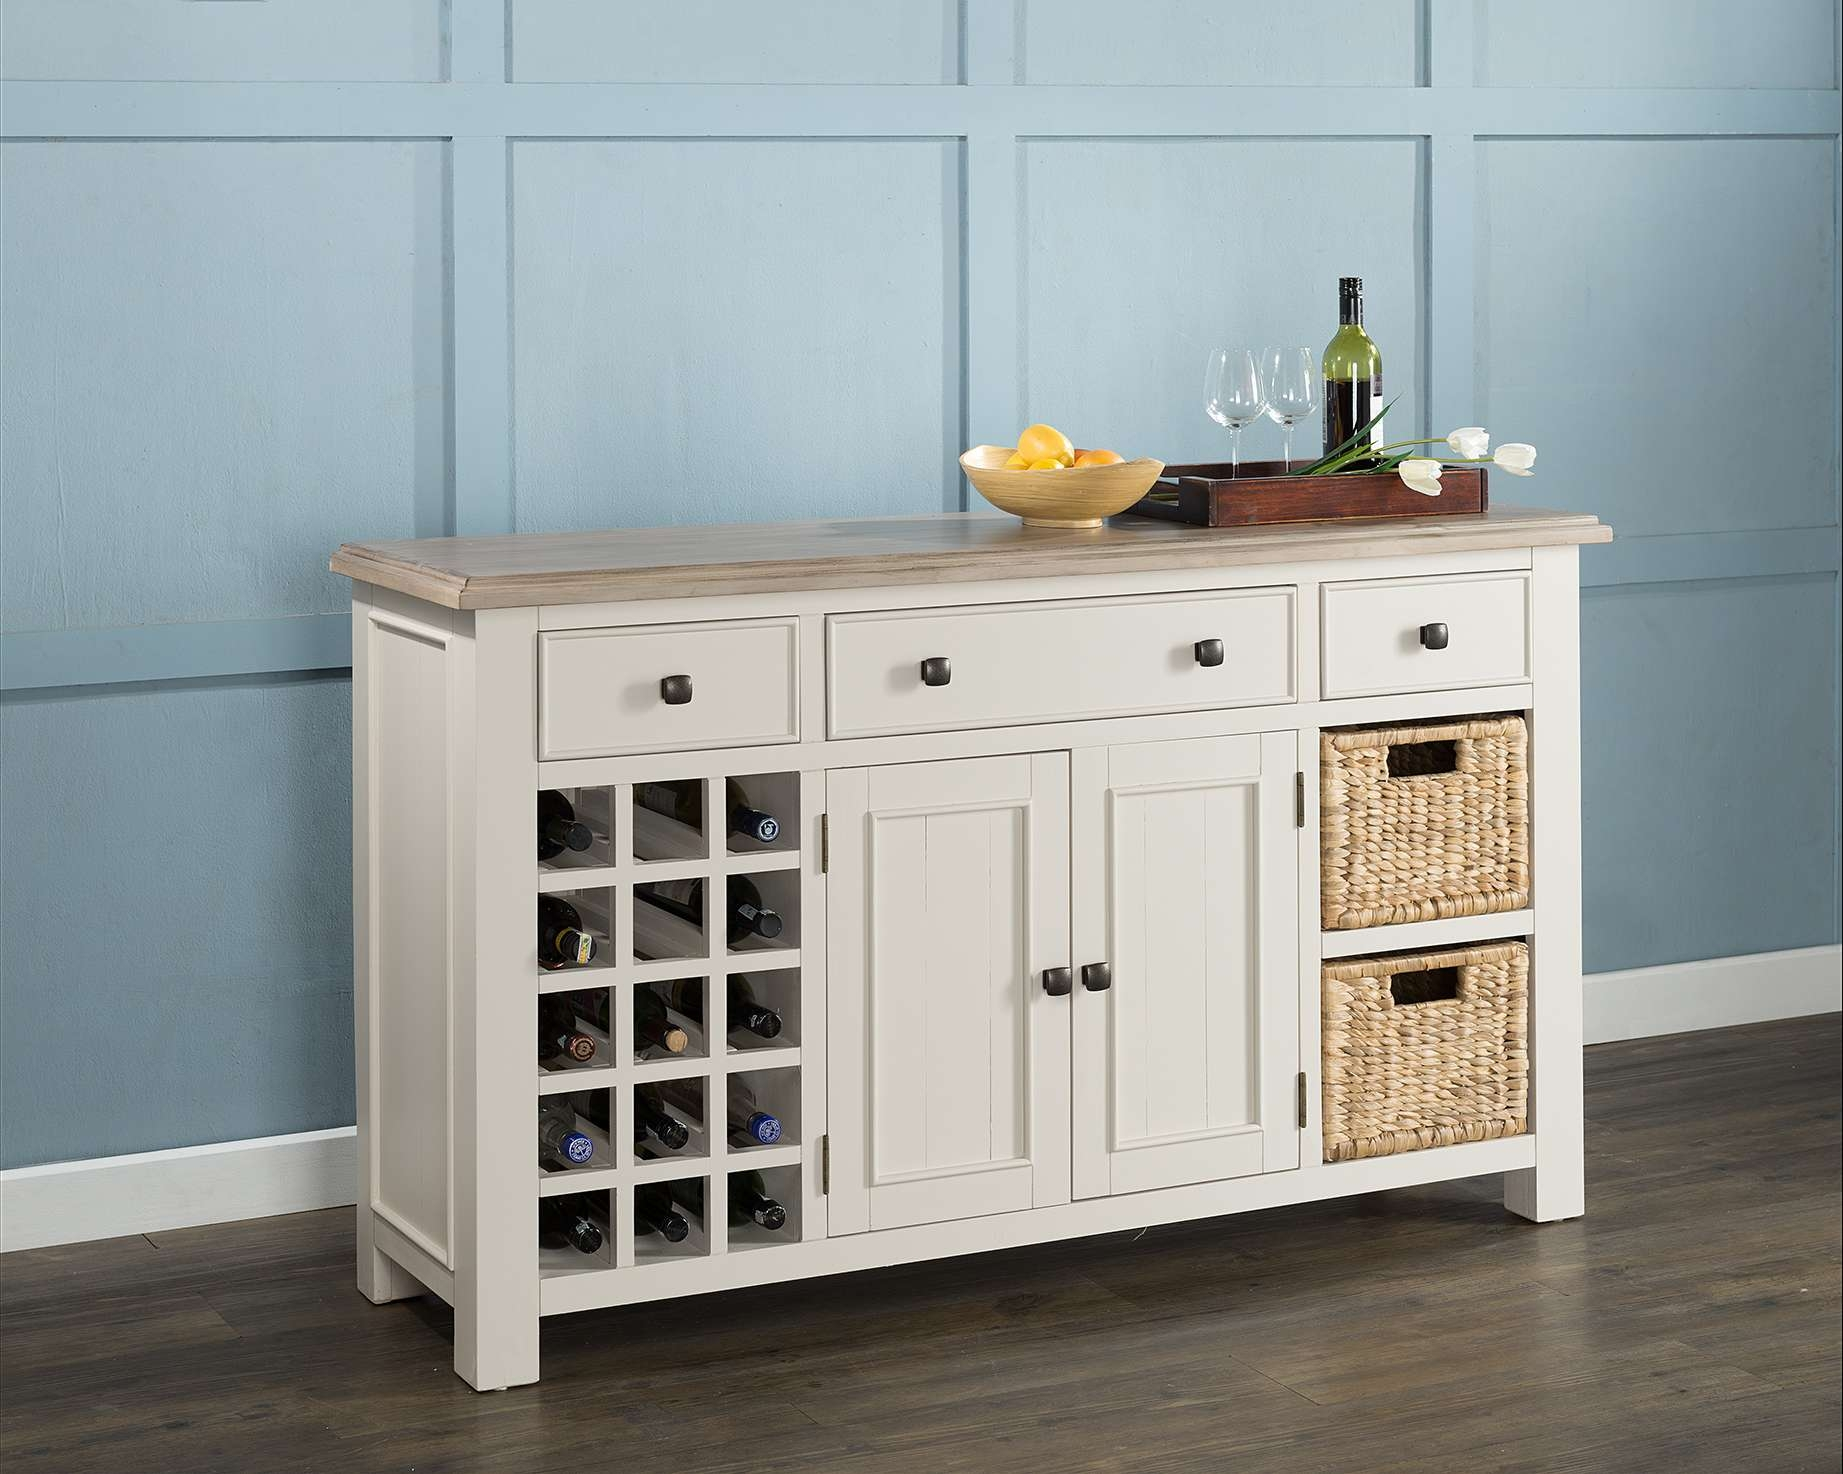 Large Sideboard With Wine Rack & Baskets (54 15) – Papaya Trading For Sideboards With Wine Rack (View 8 of 20)